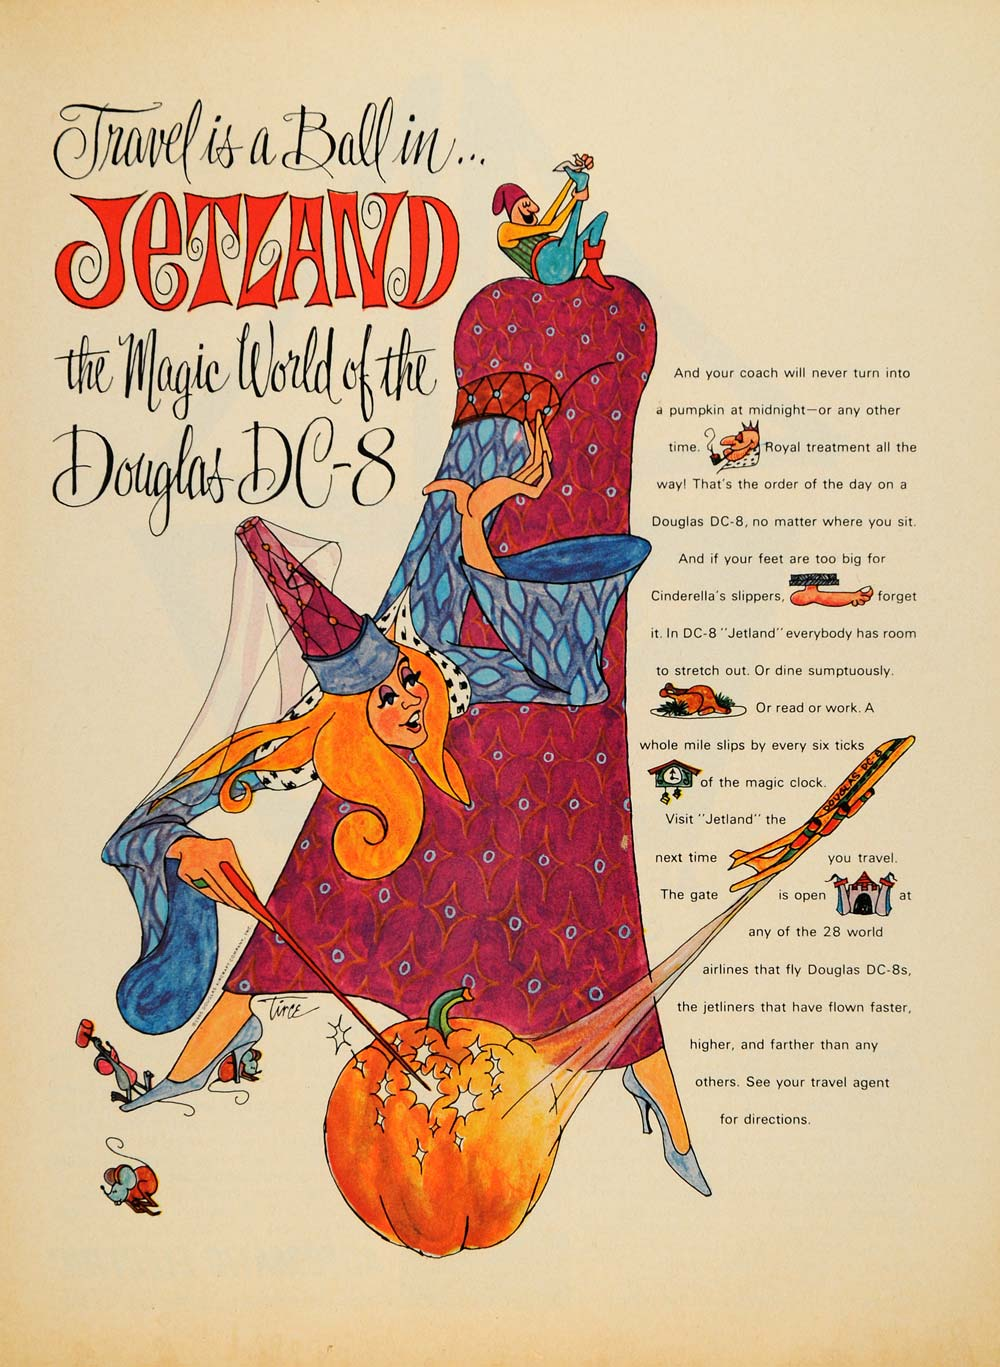 1965 Ad Douglas DC-8 Plane Jetland Fairy Tale Aviation - ORIGINAL TM7